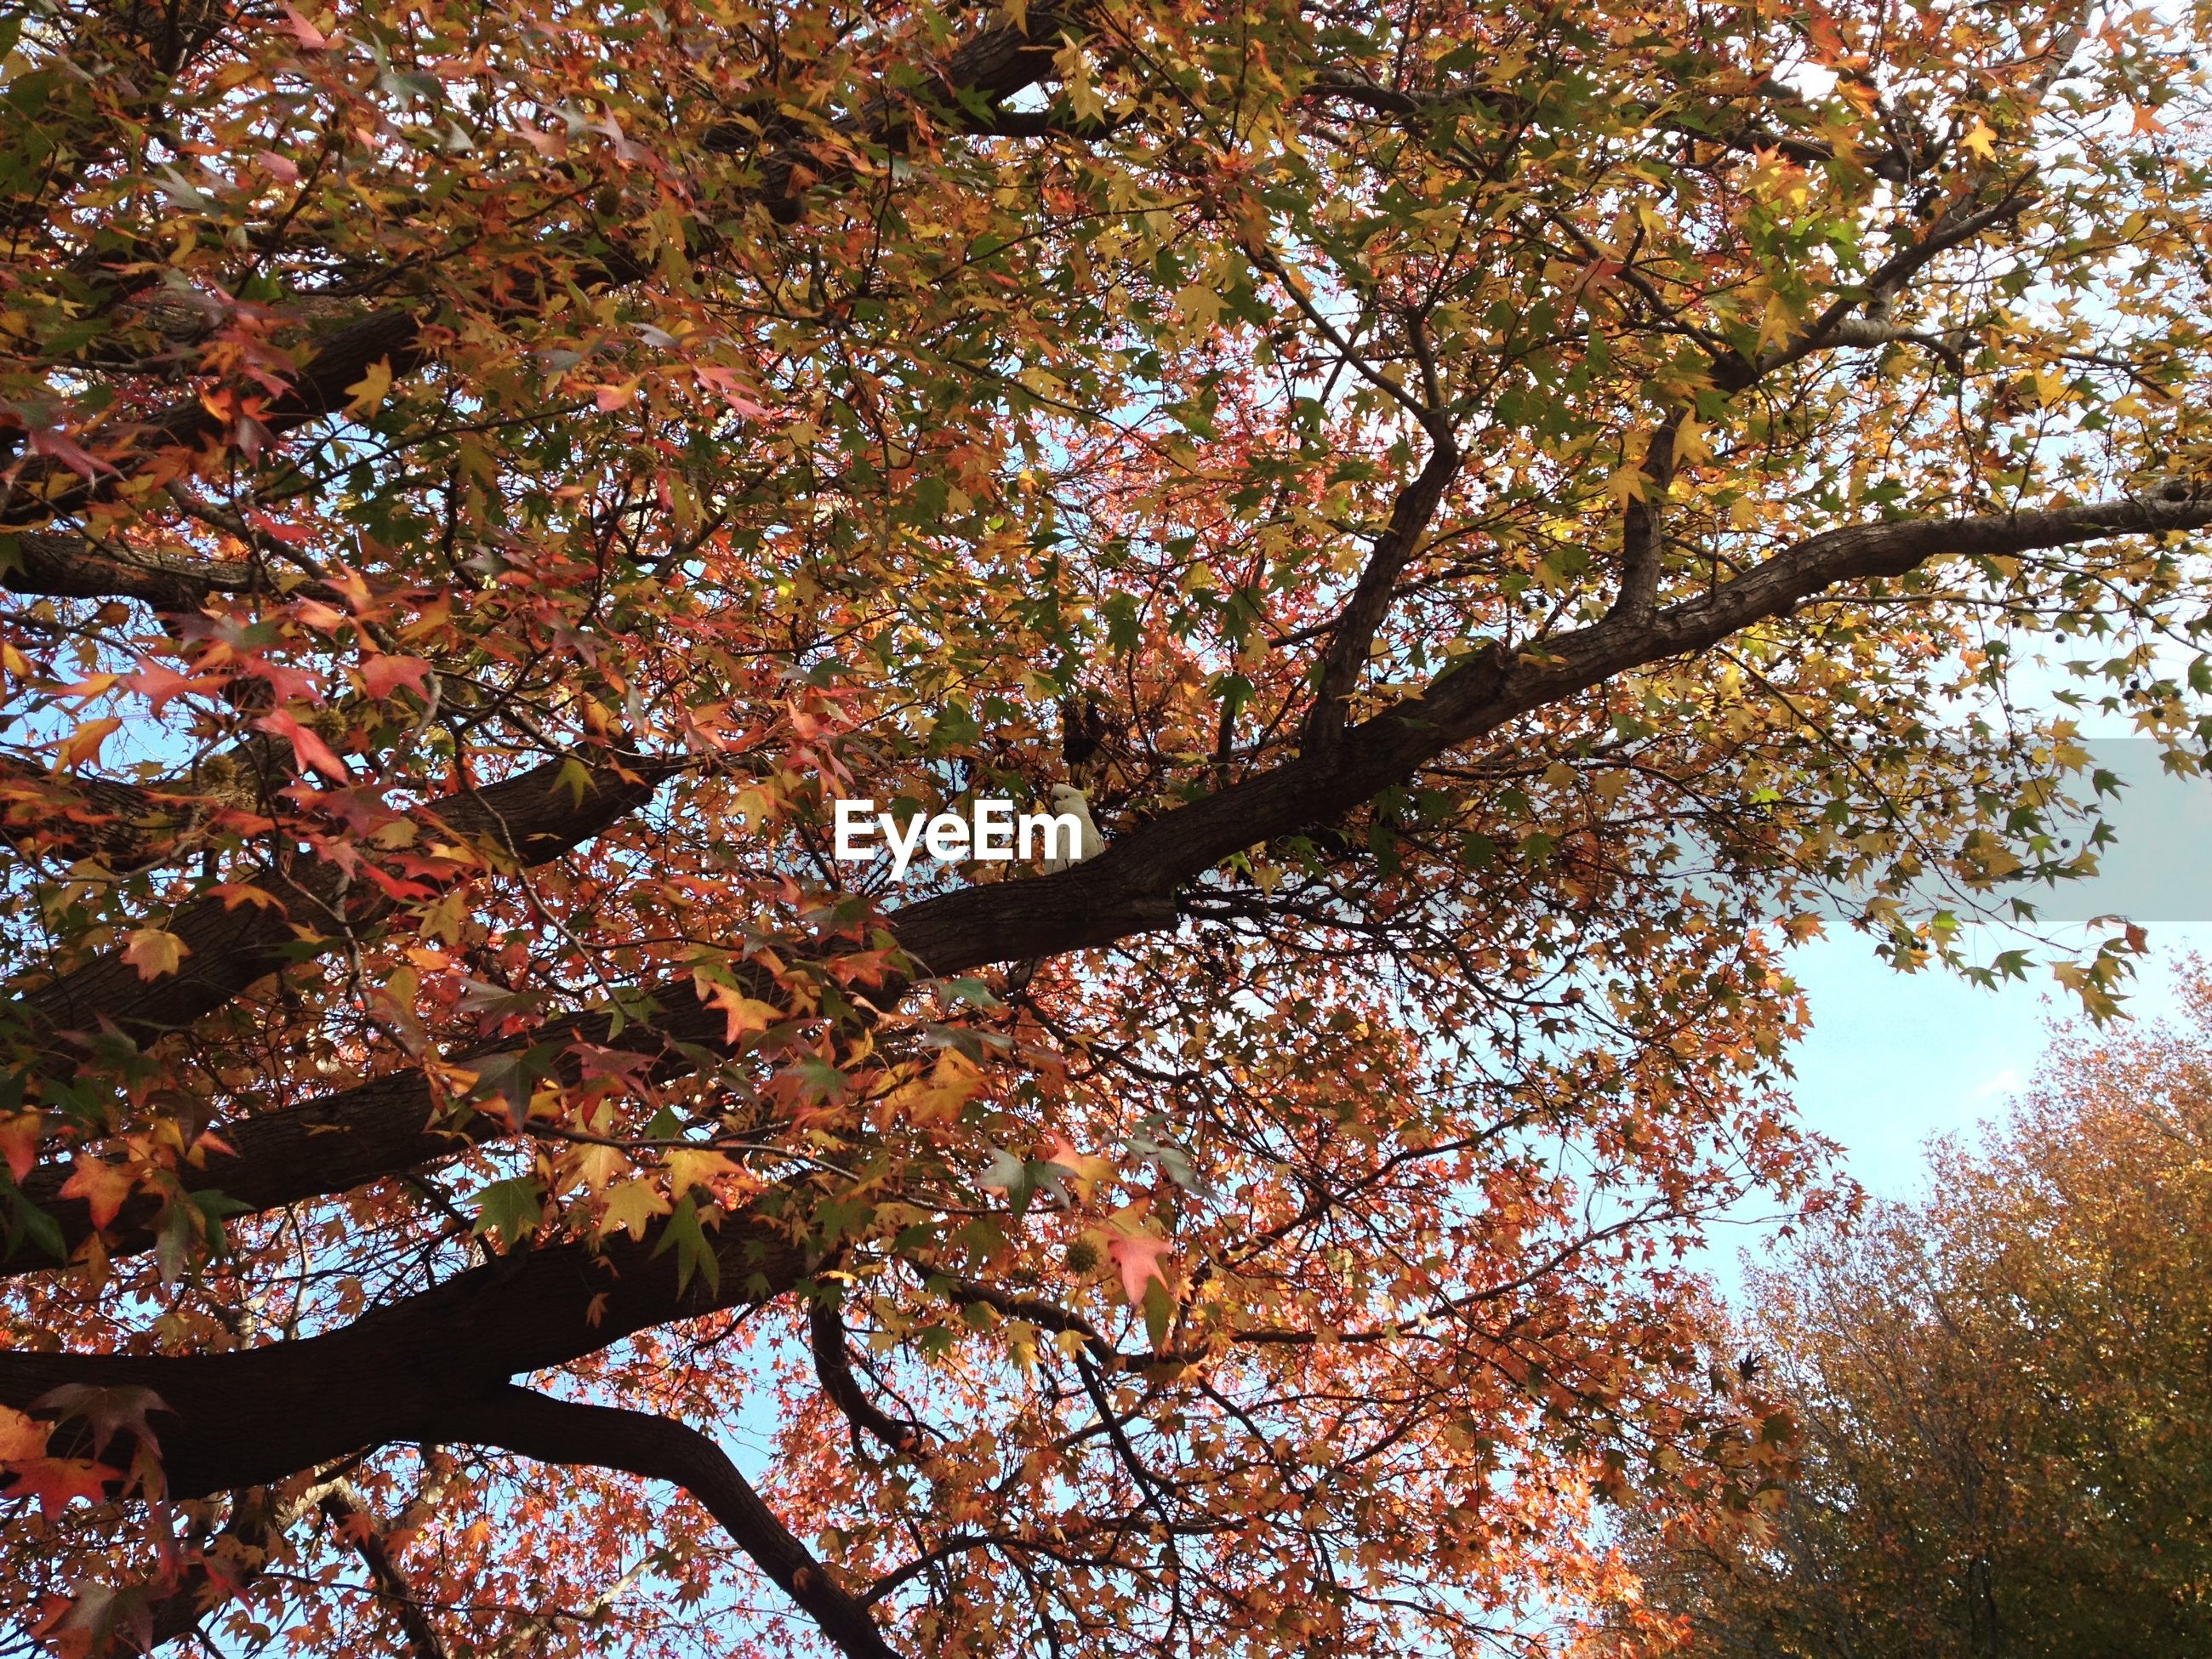 tree, low angle view, autumn, branch, change, growth, nature, beauty in nature, tranquility, season, leaf, sky, scenics, day, outdoors, no people, yellow, orange color, backgrounds, sunlight